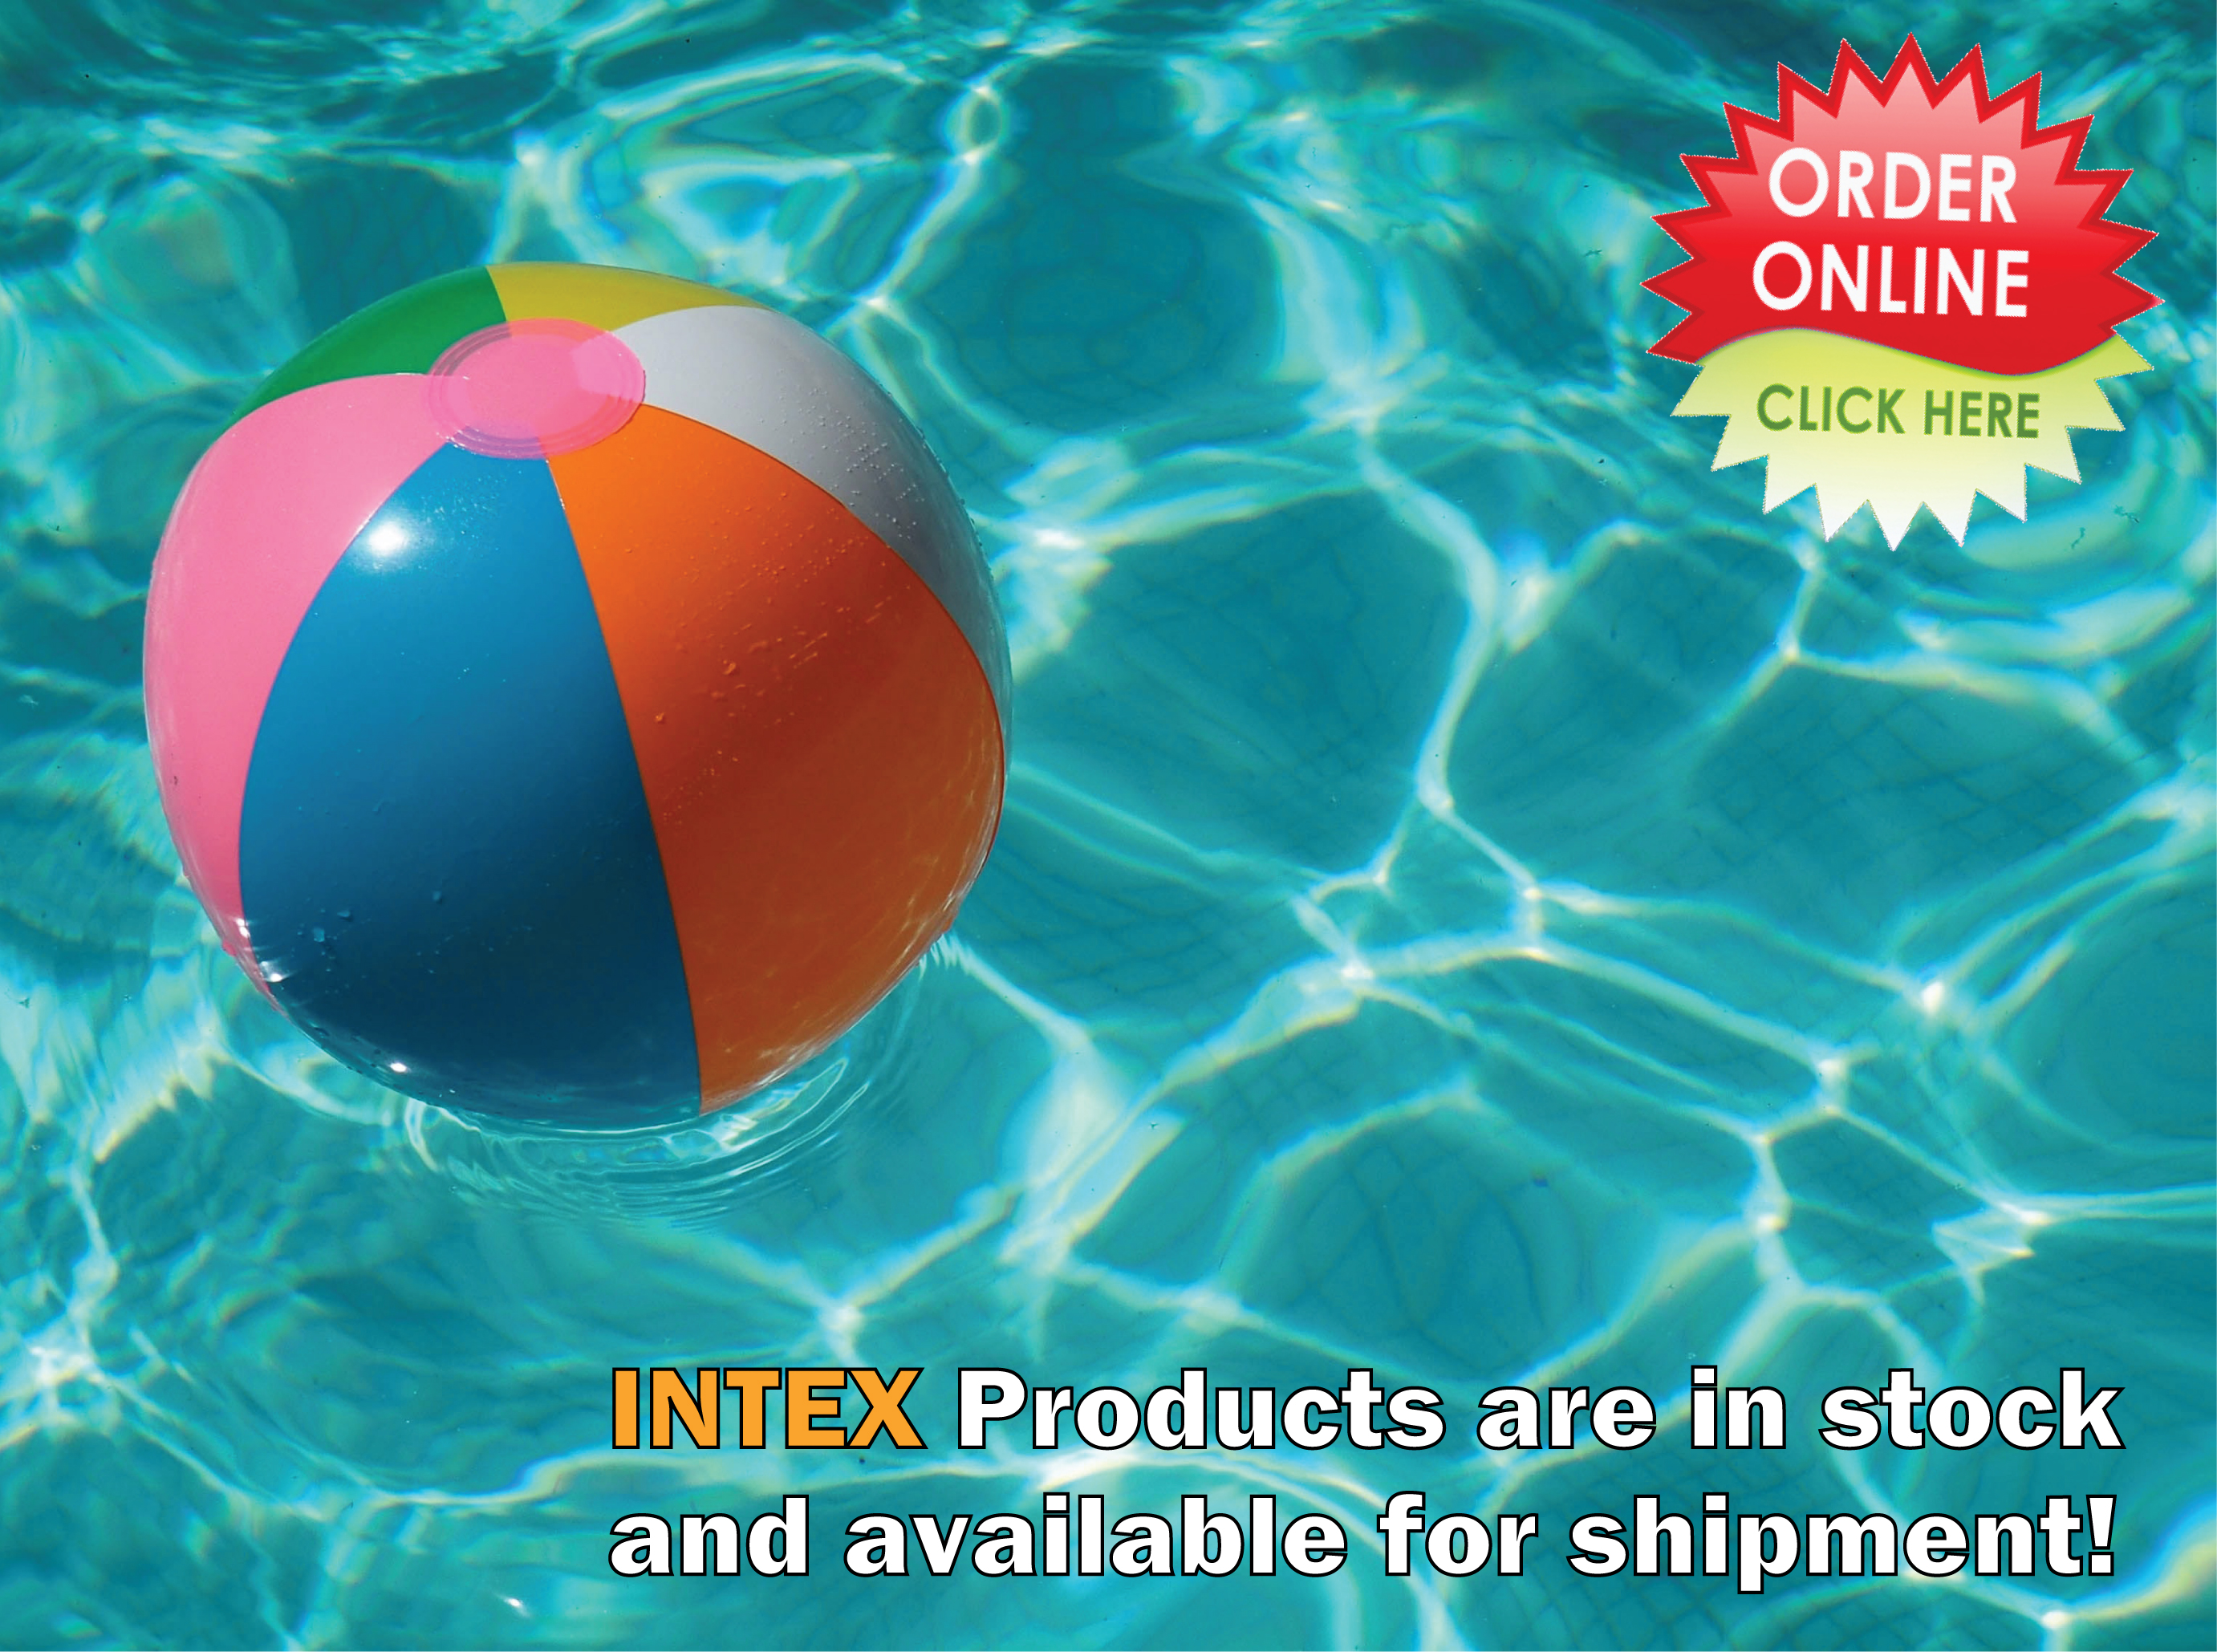 Jump to our Wholesale NEW Intex products!